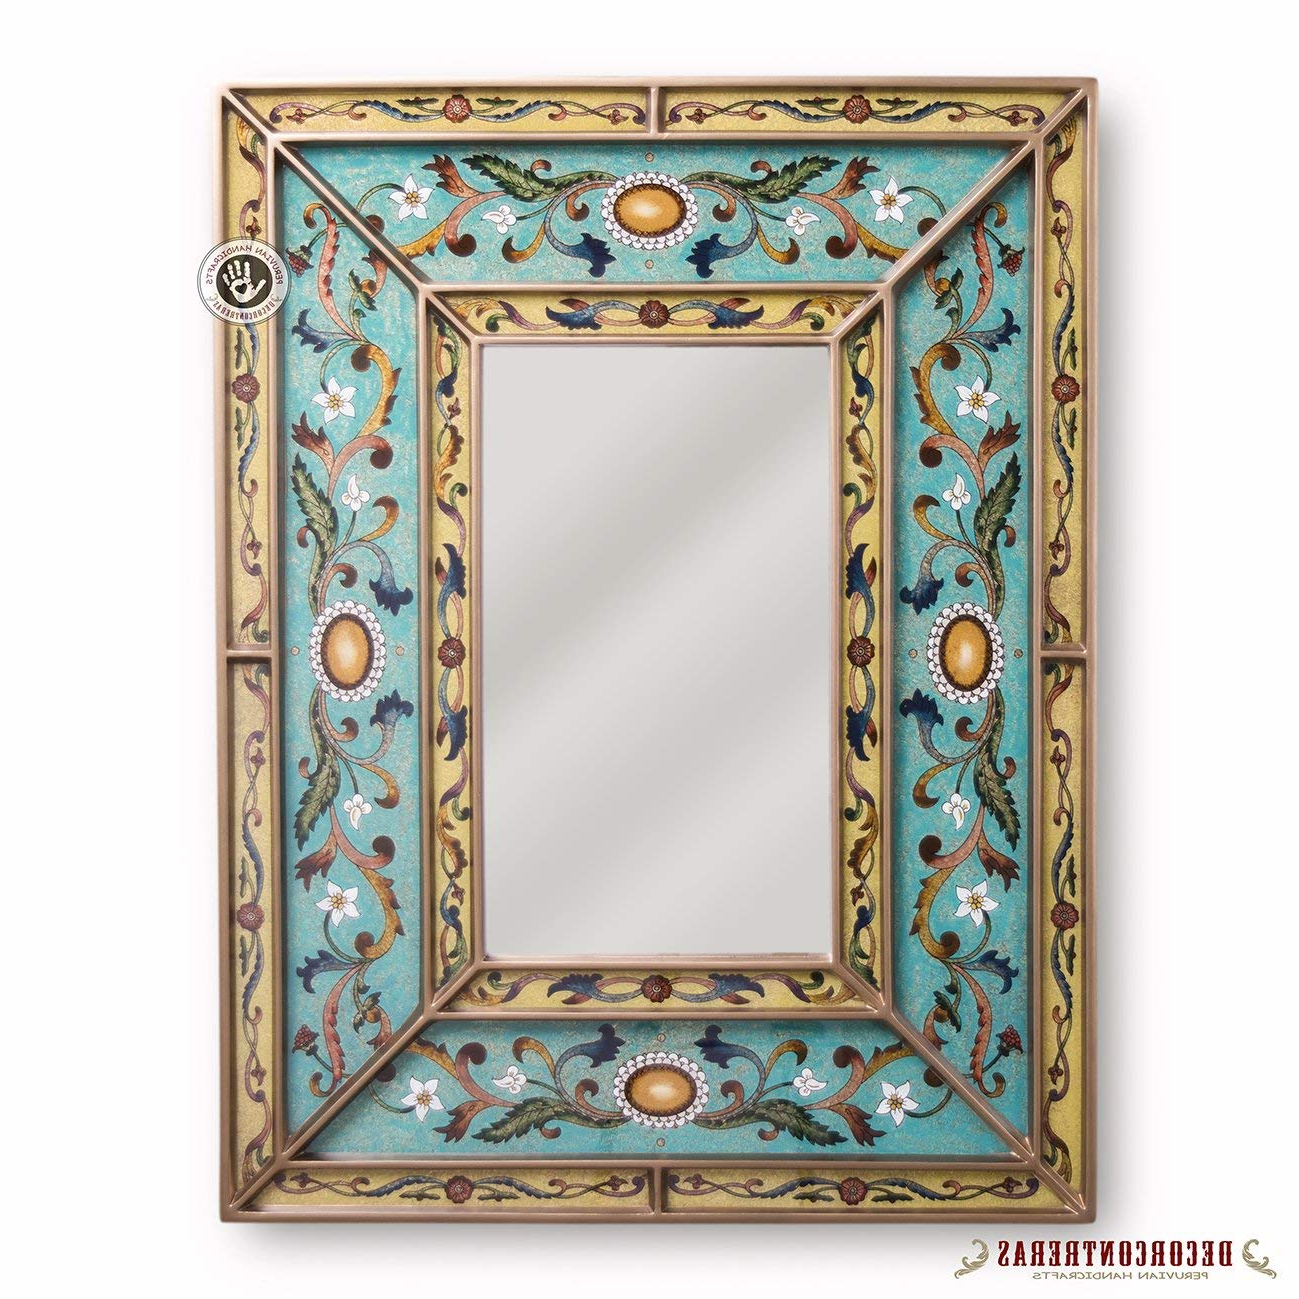 Hand Painted Wall Mirrors Pertaining To Most Up To Date Amazon: Peruvian Decorative Mirror, Arts Crafts Mirror Wall (View 7 of 20)